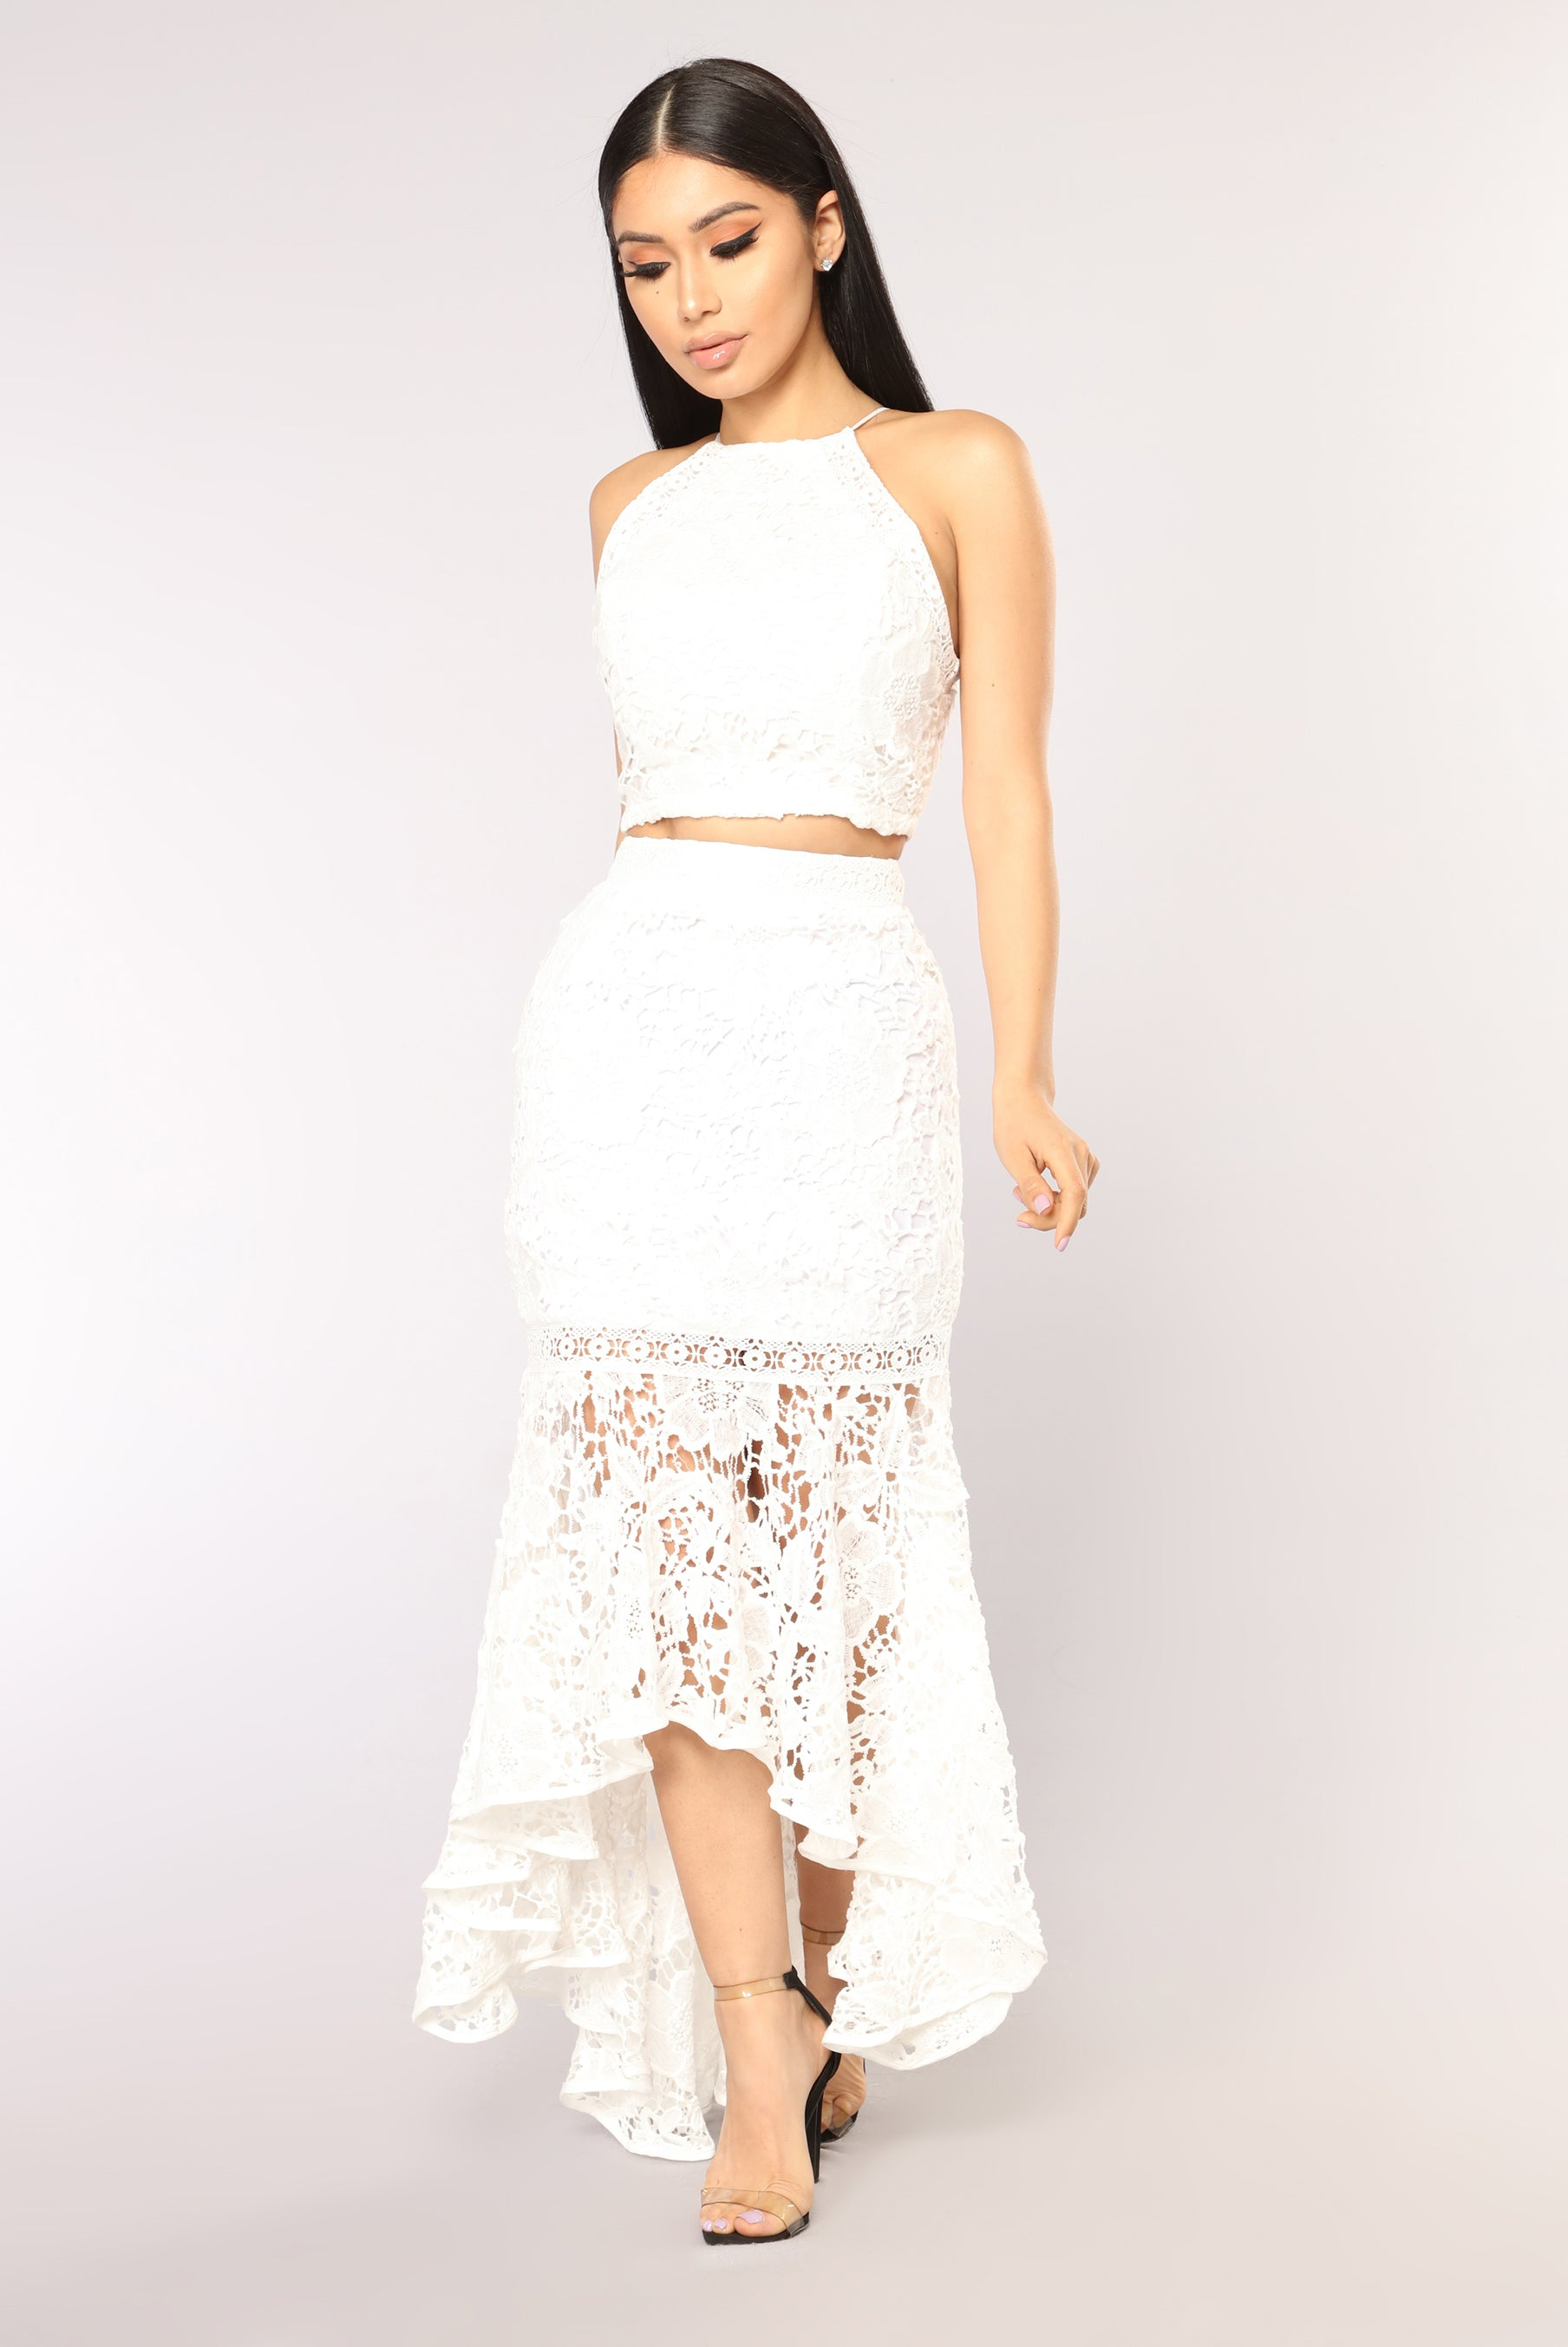 Fresh Not Your Average Girl Lace Skirt - White CA05